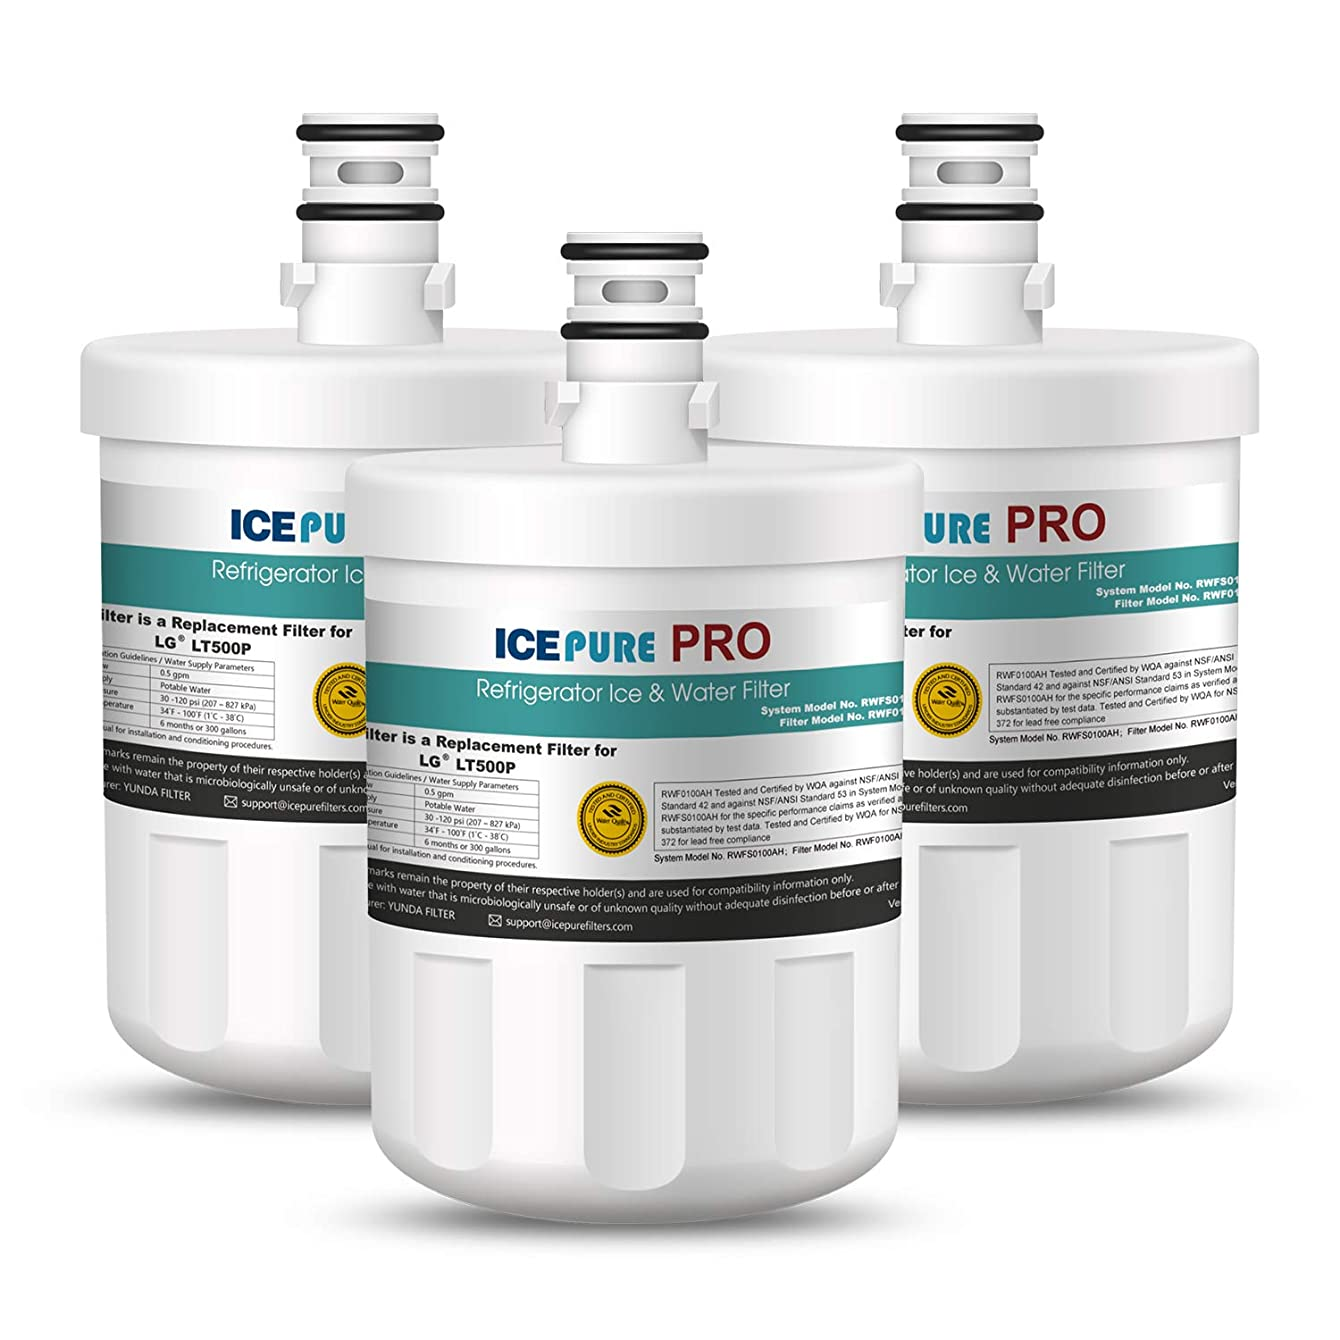 ICEPURE PRO LT500P NSF 53&42 Certified Refrigerator Water Filter Replacement for LG LT500P,5231JA2002A,ADQ72910901,5231ja2002a RWF0100A Advanced Series 3PACK